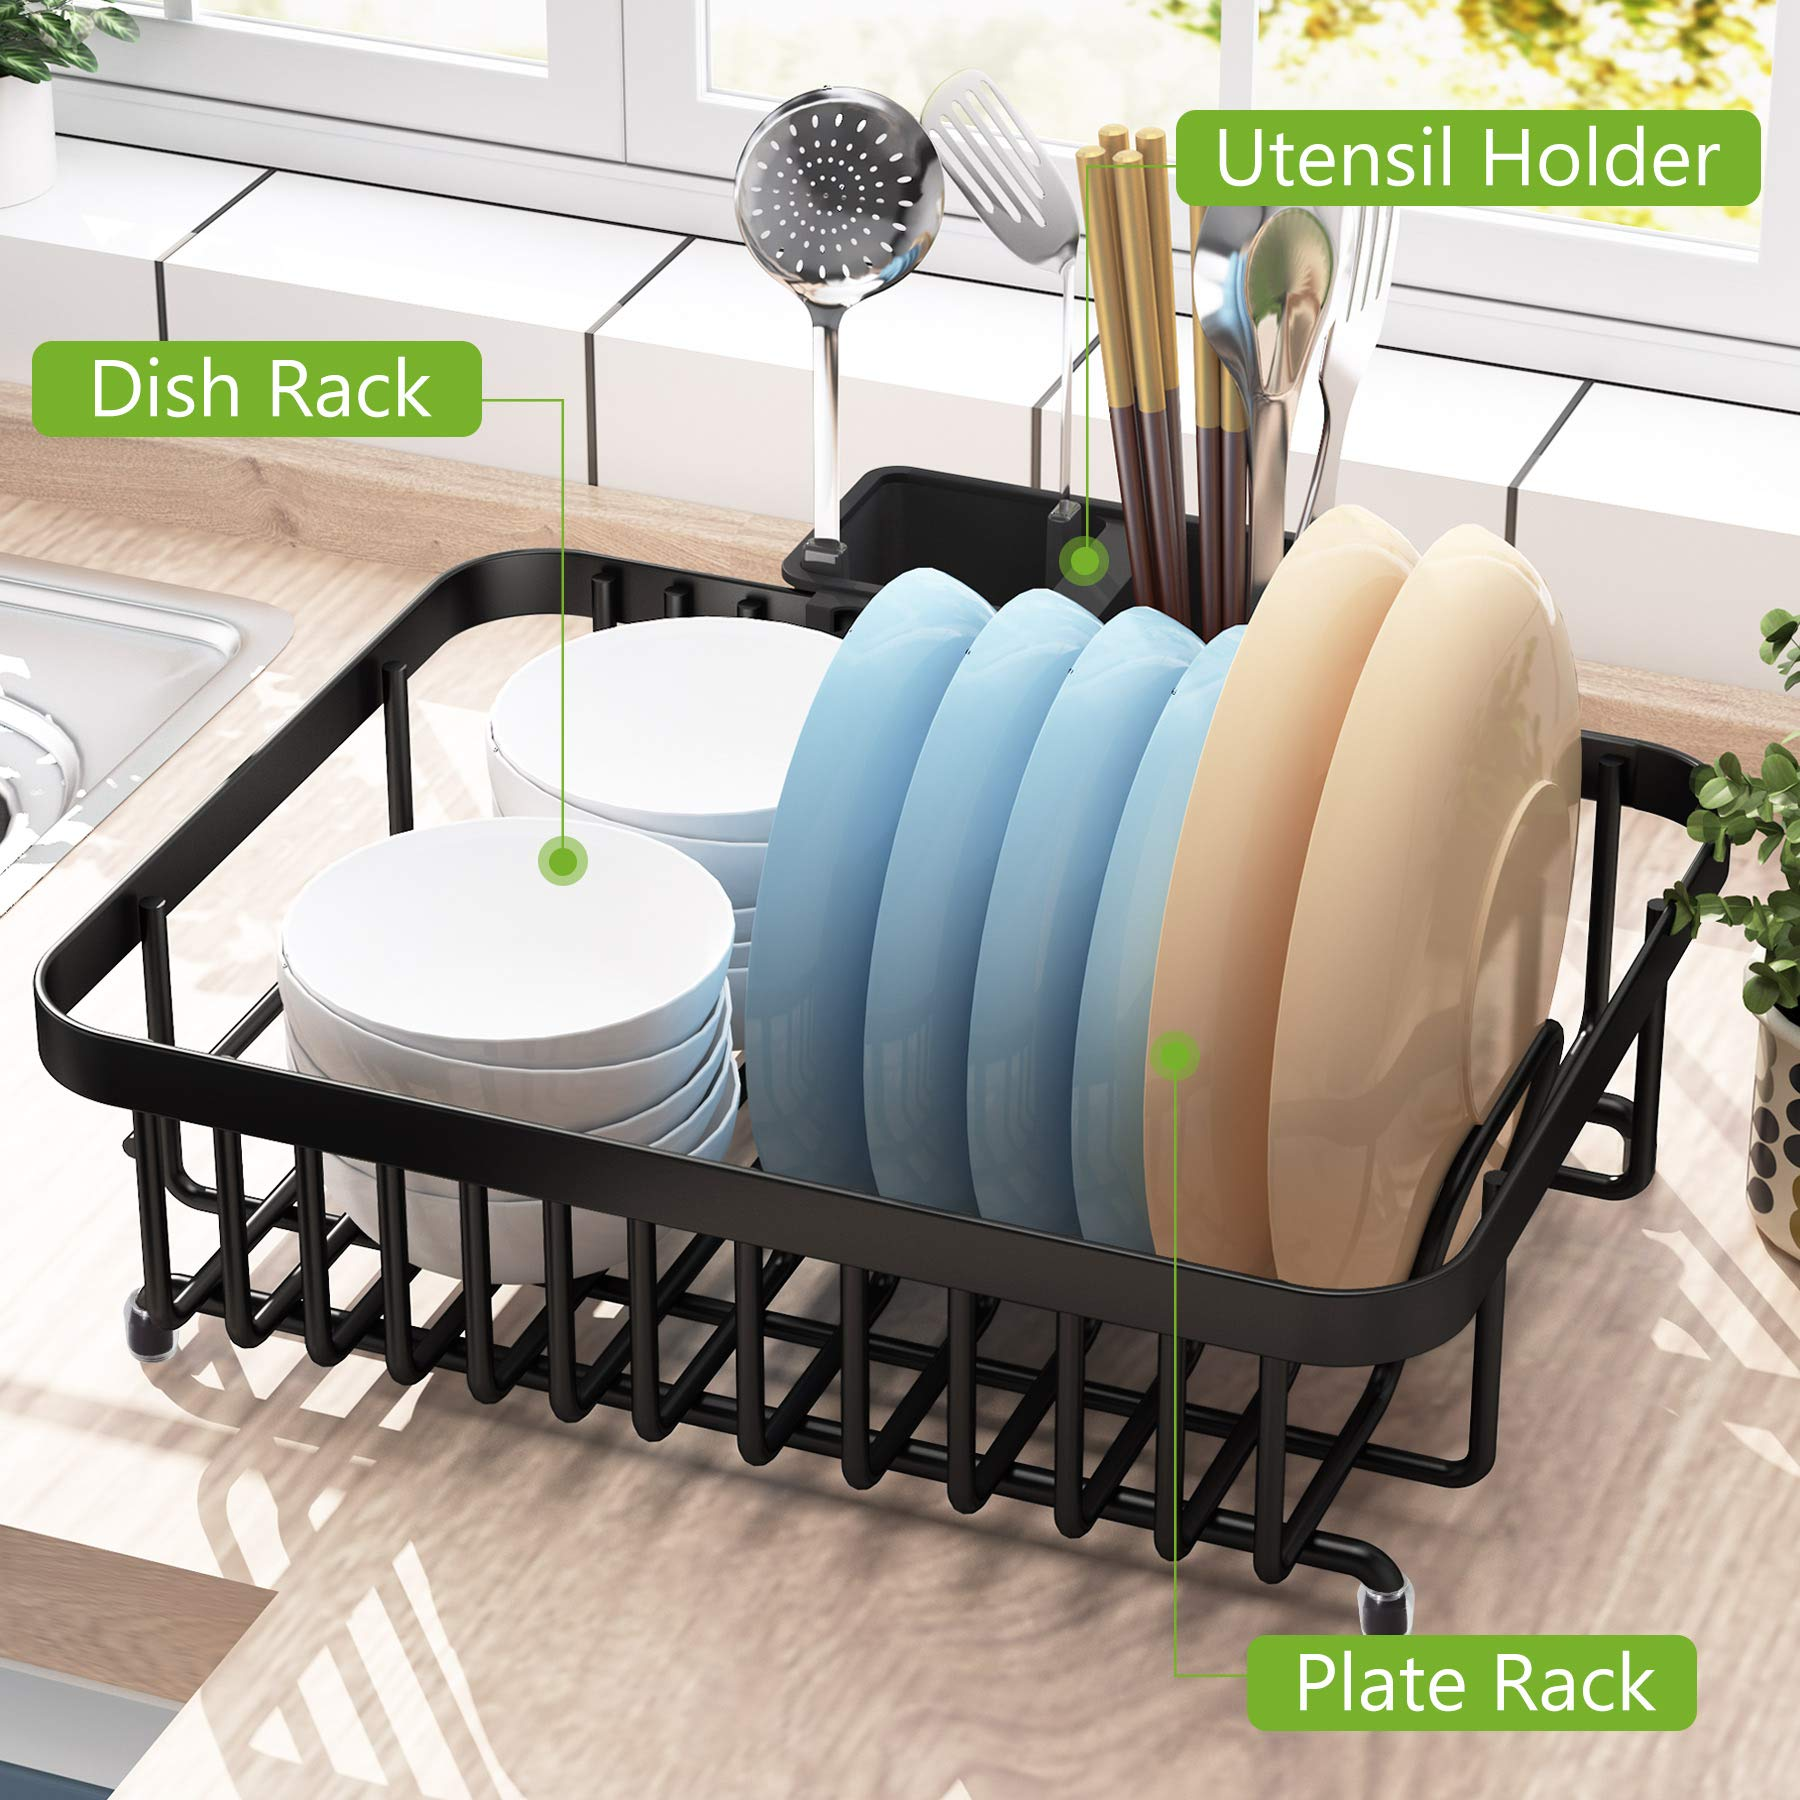 1Easylife Dish Drying Rack with Anti Rust Frame, Small Dish Drainer Rack for Kitchen Counter, Sink Dish Rack on Counter with Utensil Holder and Non-Slip Rubber Feet Rustproof for Organizer Storage